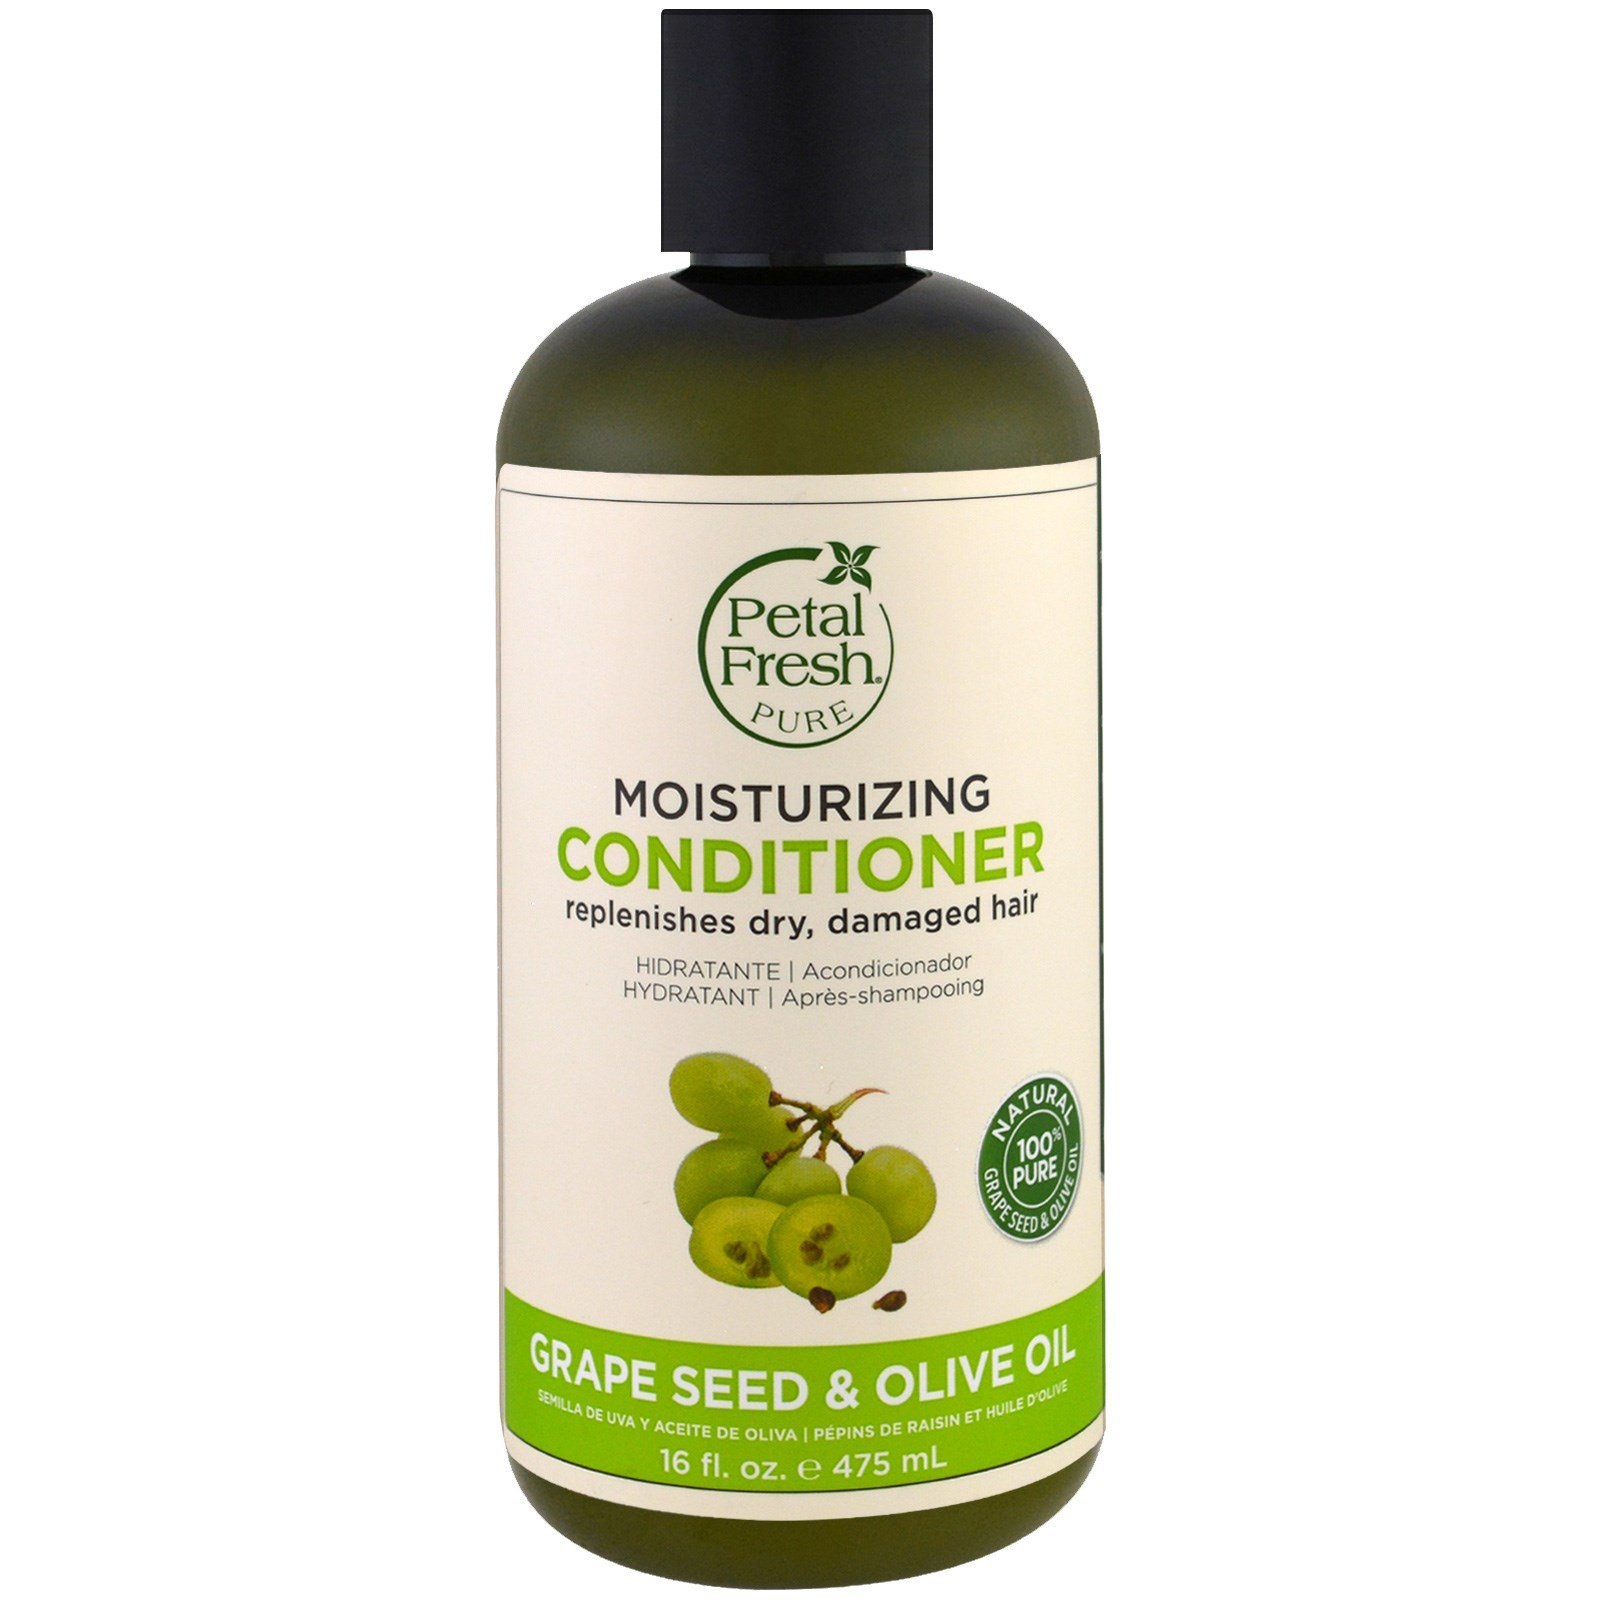 Petal Fresh, Pure, Moisturizing Conditioner, Grape Seed & Olive Oil, 16 fl oz (475 ml)